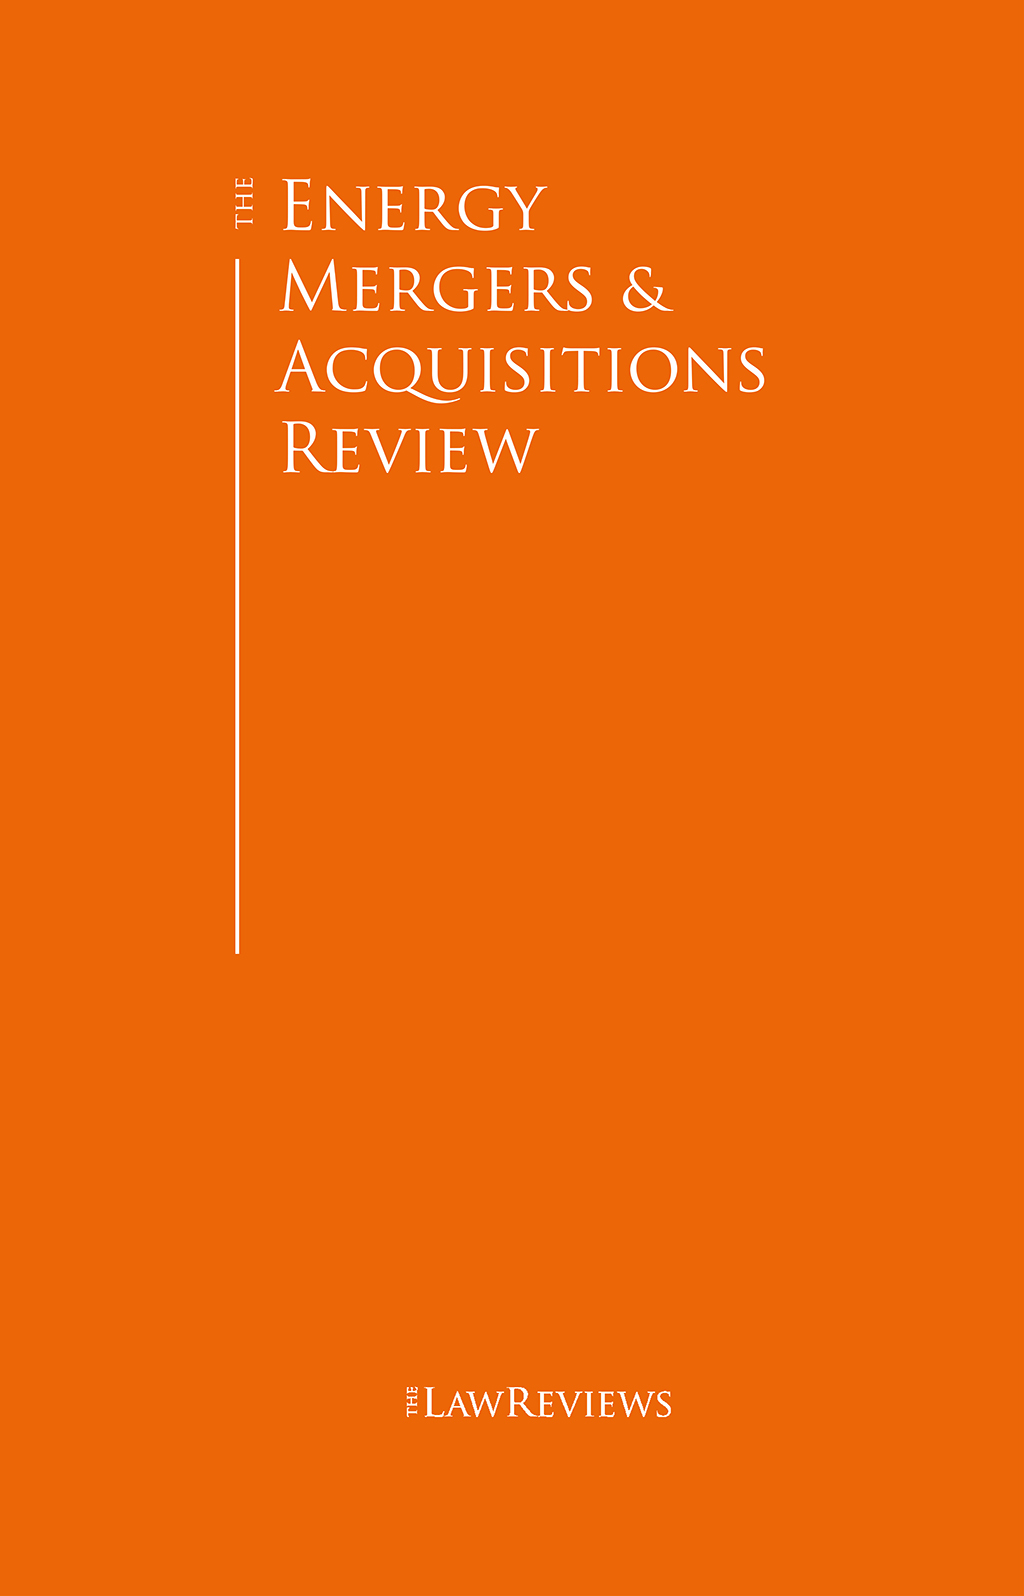 The Energy Mergers & Acquisitions Review